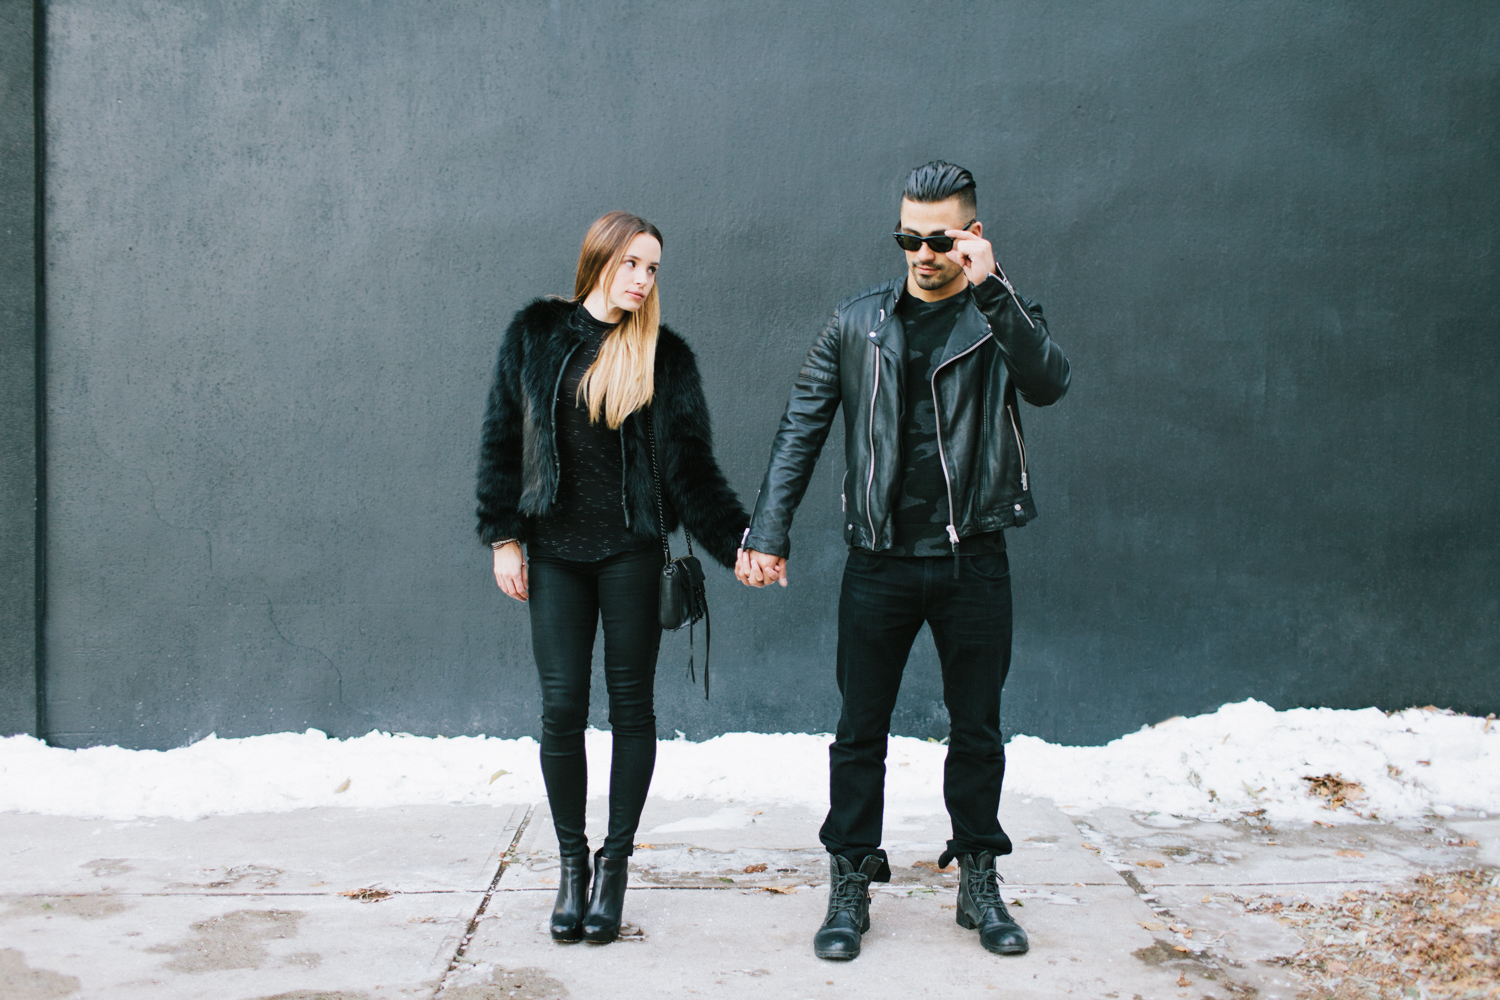 Jodi-Blk-fashion-blogger-Jose-Lopez-fit-michael-rousseau-photography-streetwear-fashion-engagement-session039.jpg